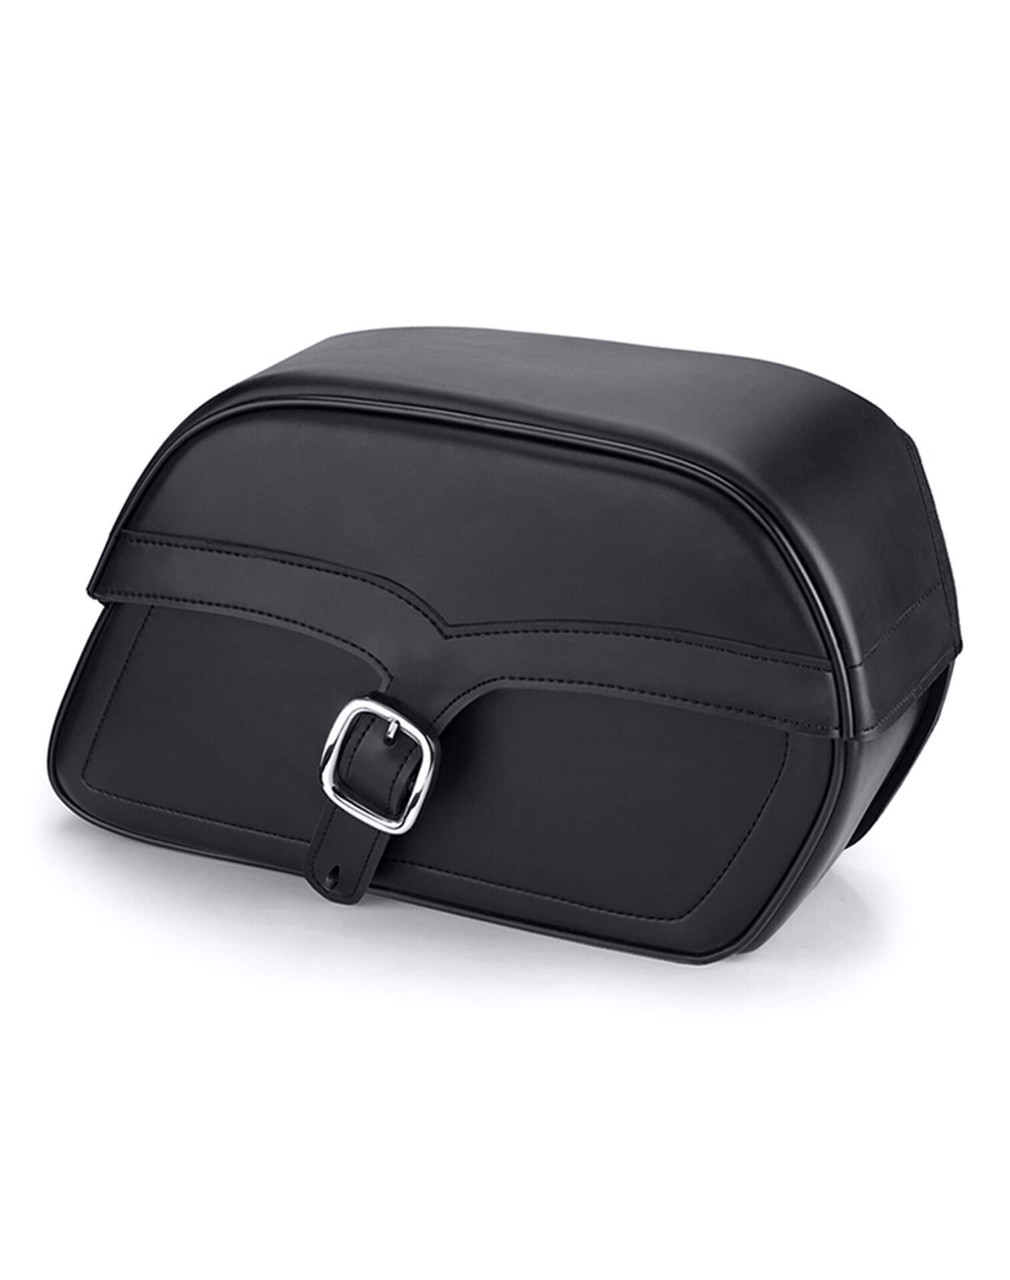 Indian Scout Sixty SS Slanted Large Motorcycle Saddlebags Main Bag View